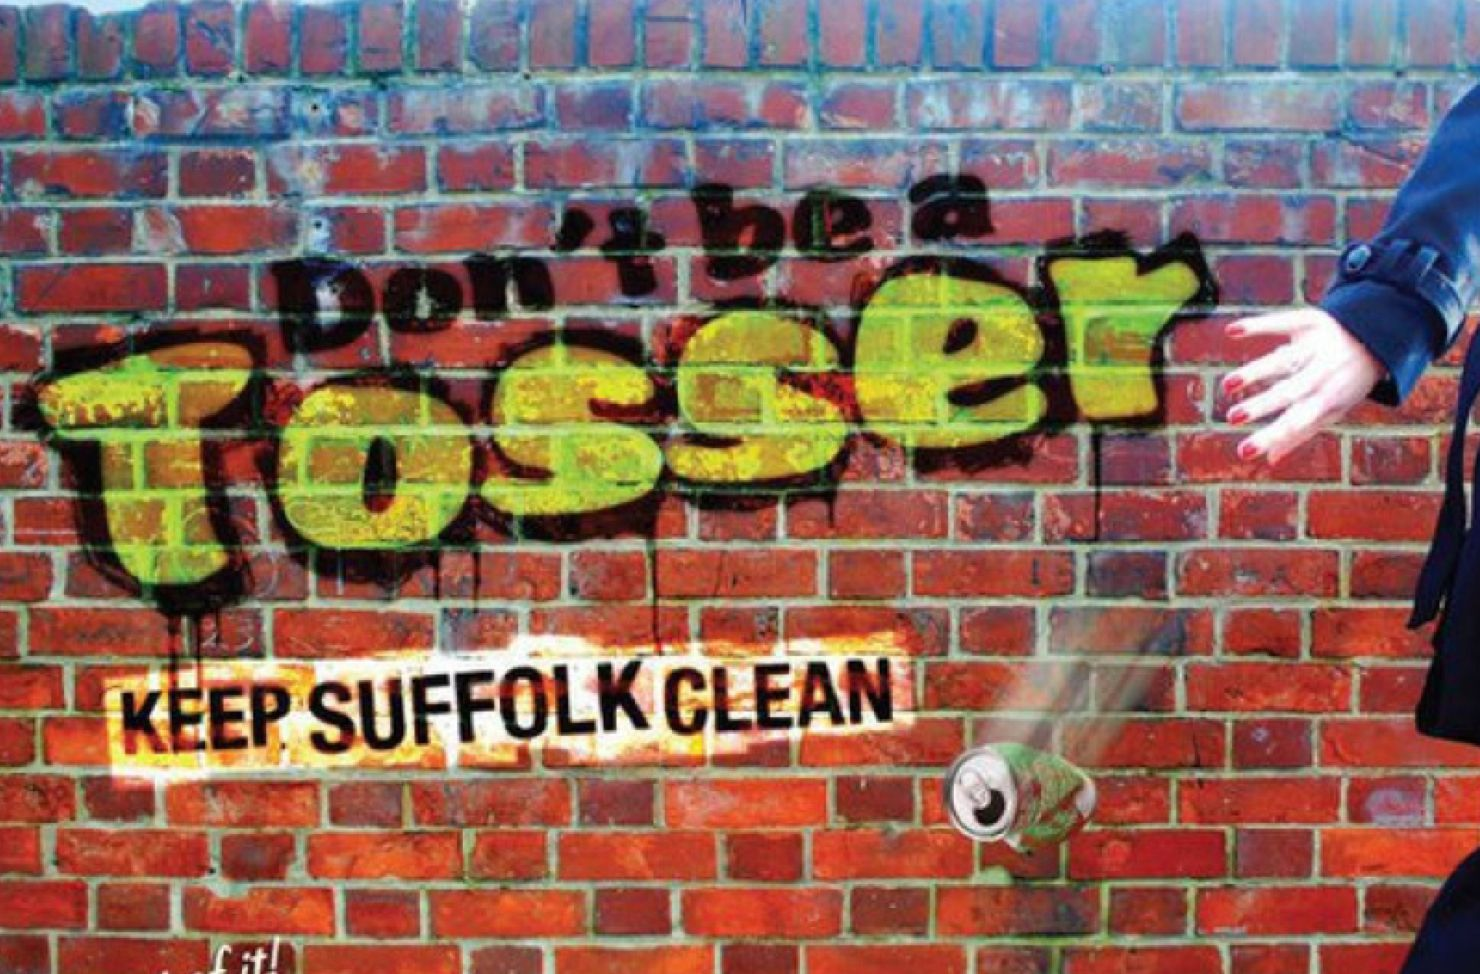 Don't Be A Tosser campaign